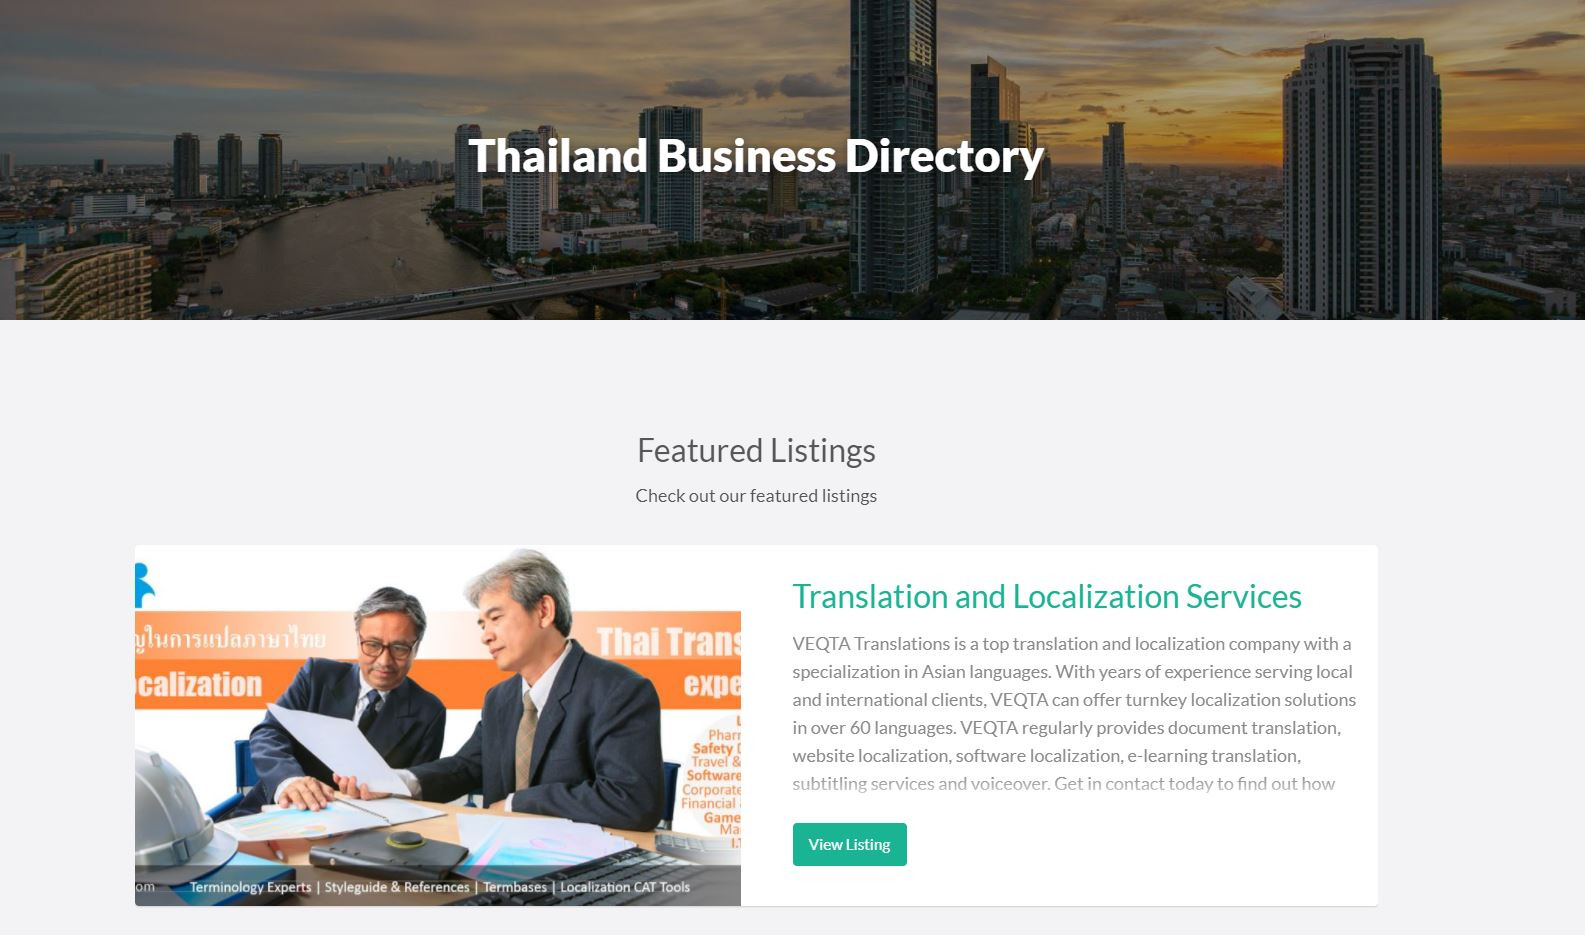 thailandbusinessdirectory